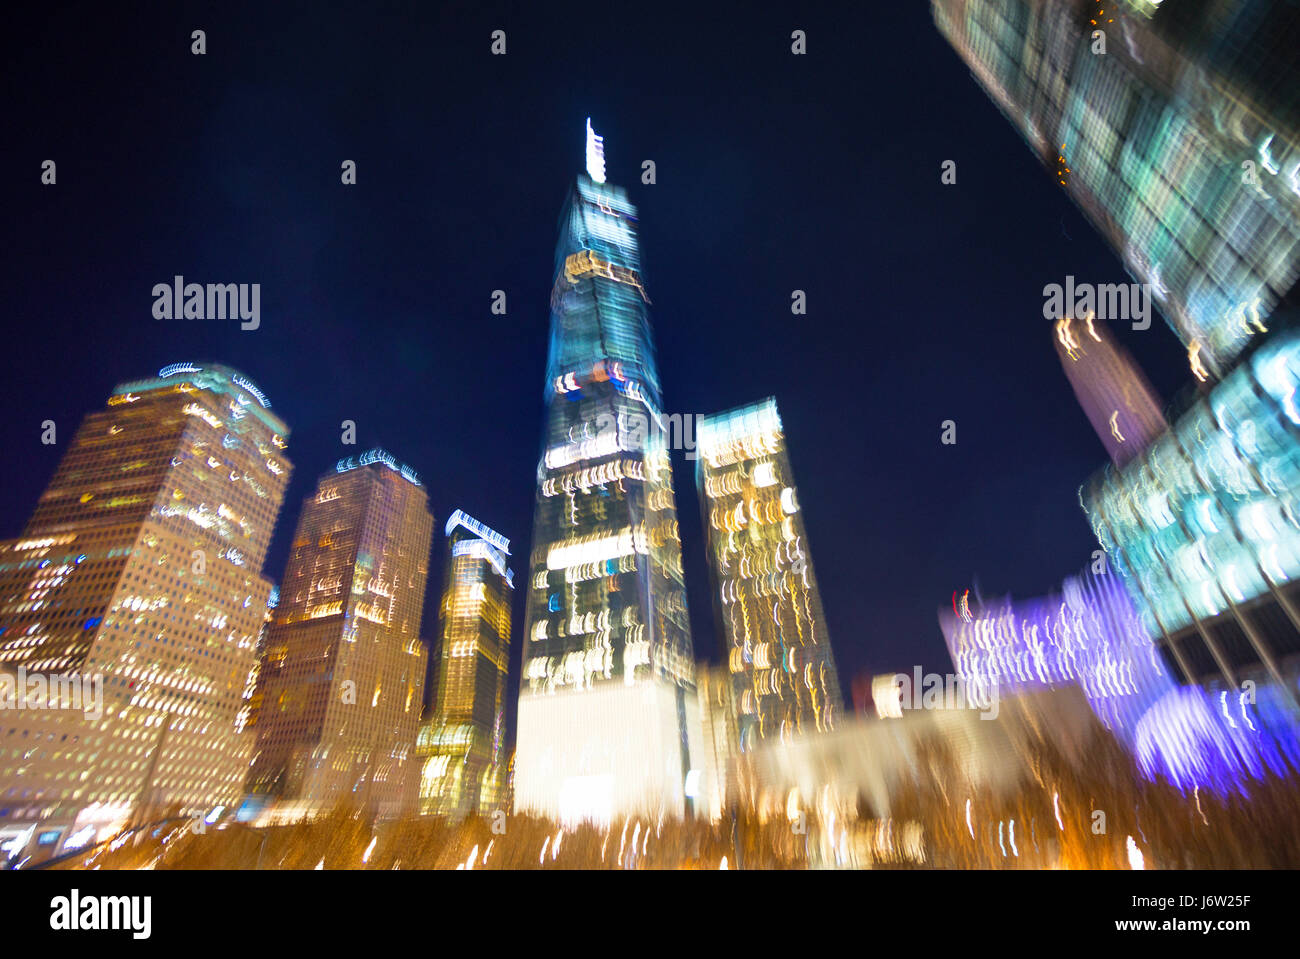 An abstract concept view of the World Trade Center in New York City - Stock Image